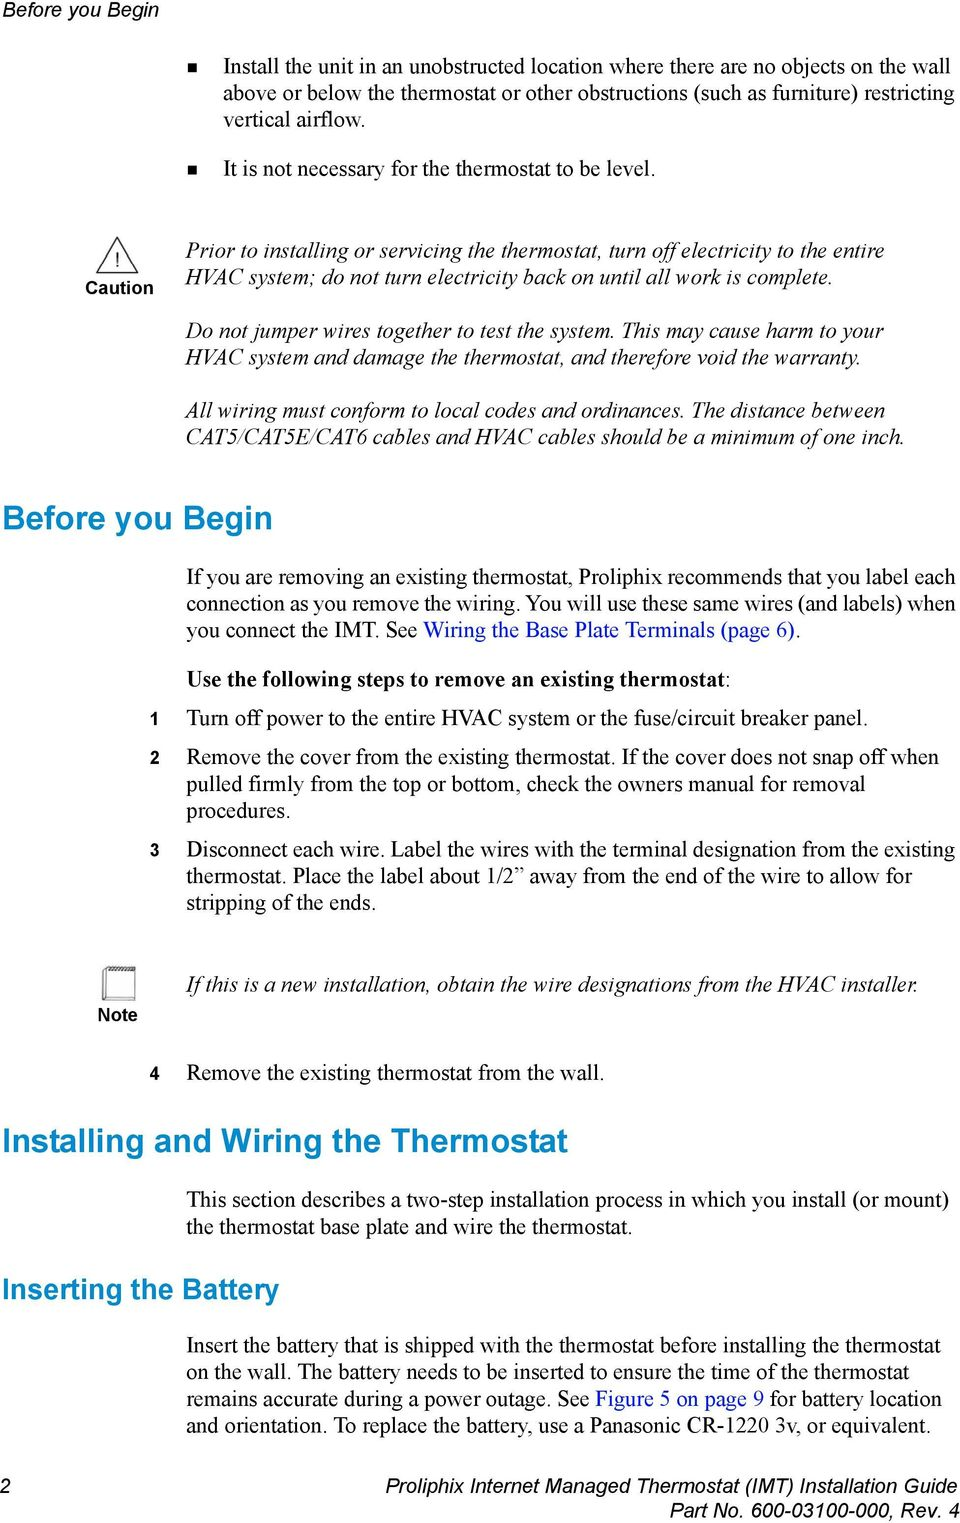 Proliphix Internet Managed Thermostat Imt Installation Guide Pdf Wiring Labels Number Caution Prior To Installing Or Servicing The Turn Off Electricity Entire Hvac